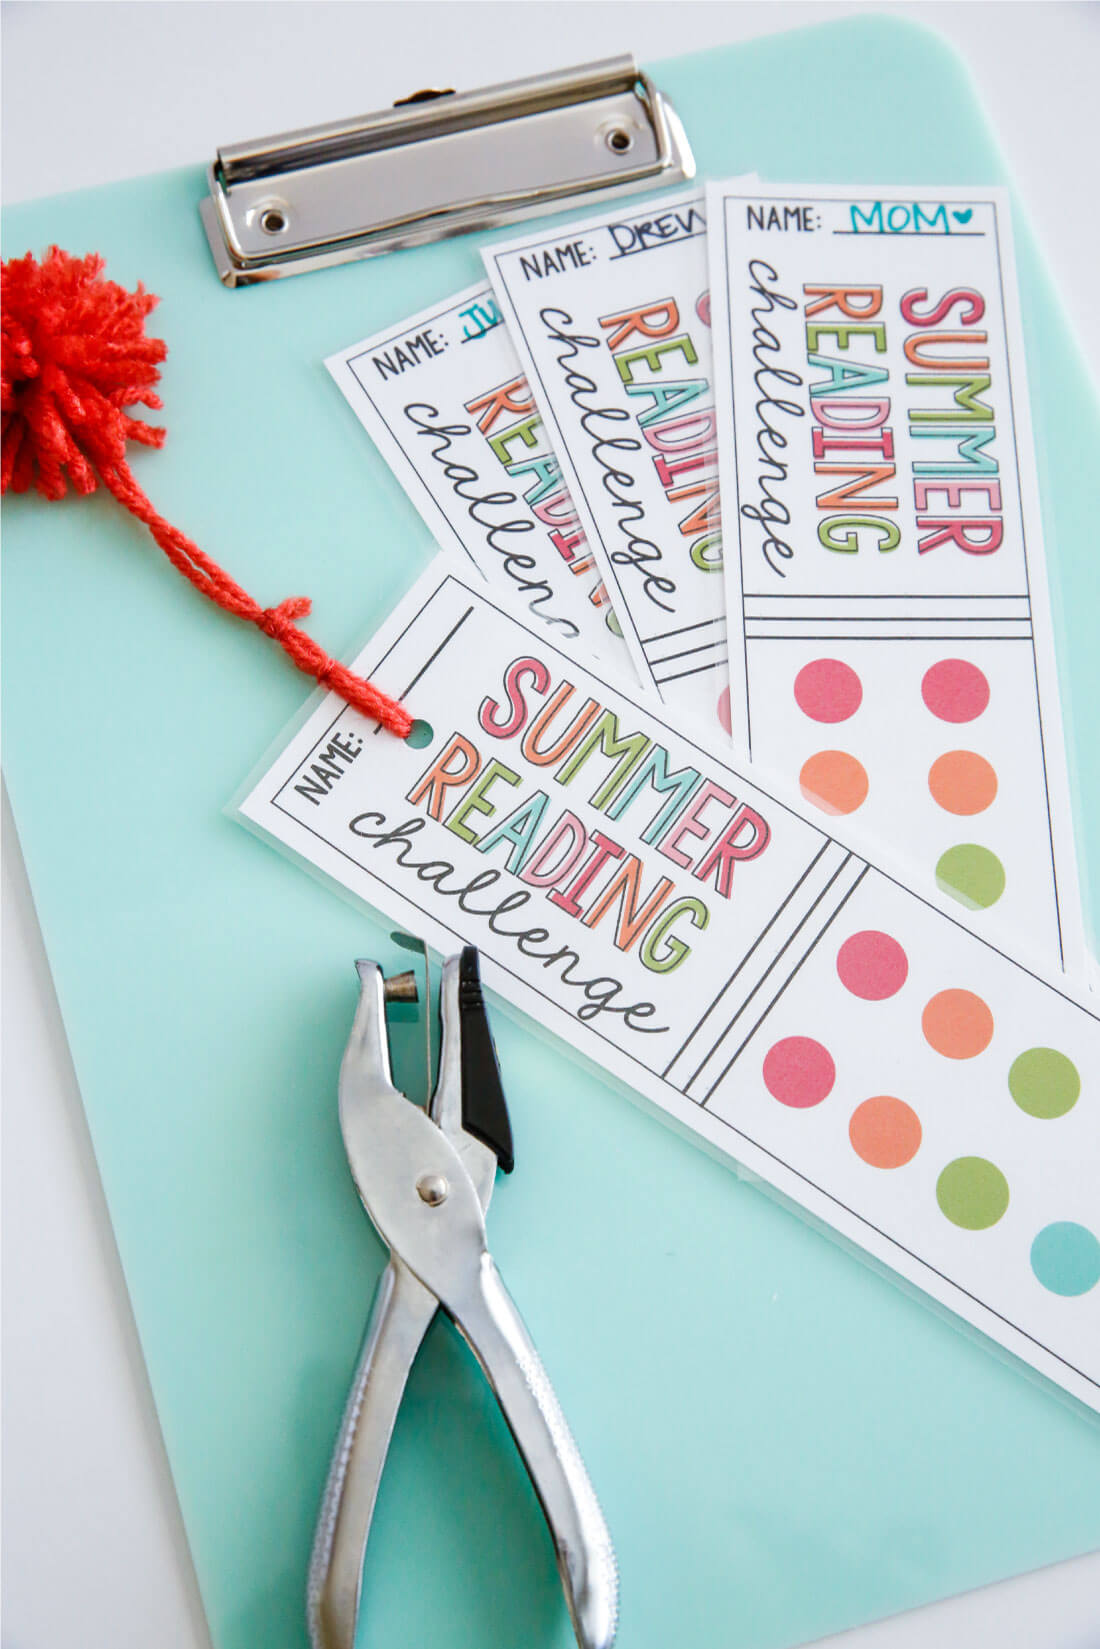 Printable Summer Reading Challenge Bookmarks - use these bookmarks to encourage reading this summer! via thirthyhandmadedays.com